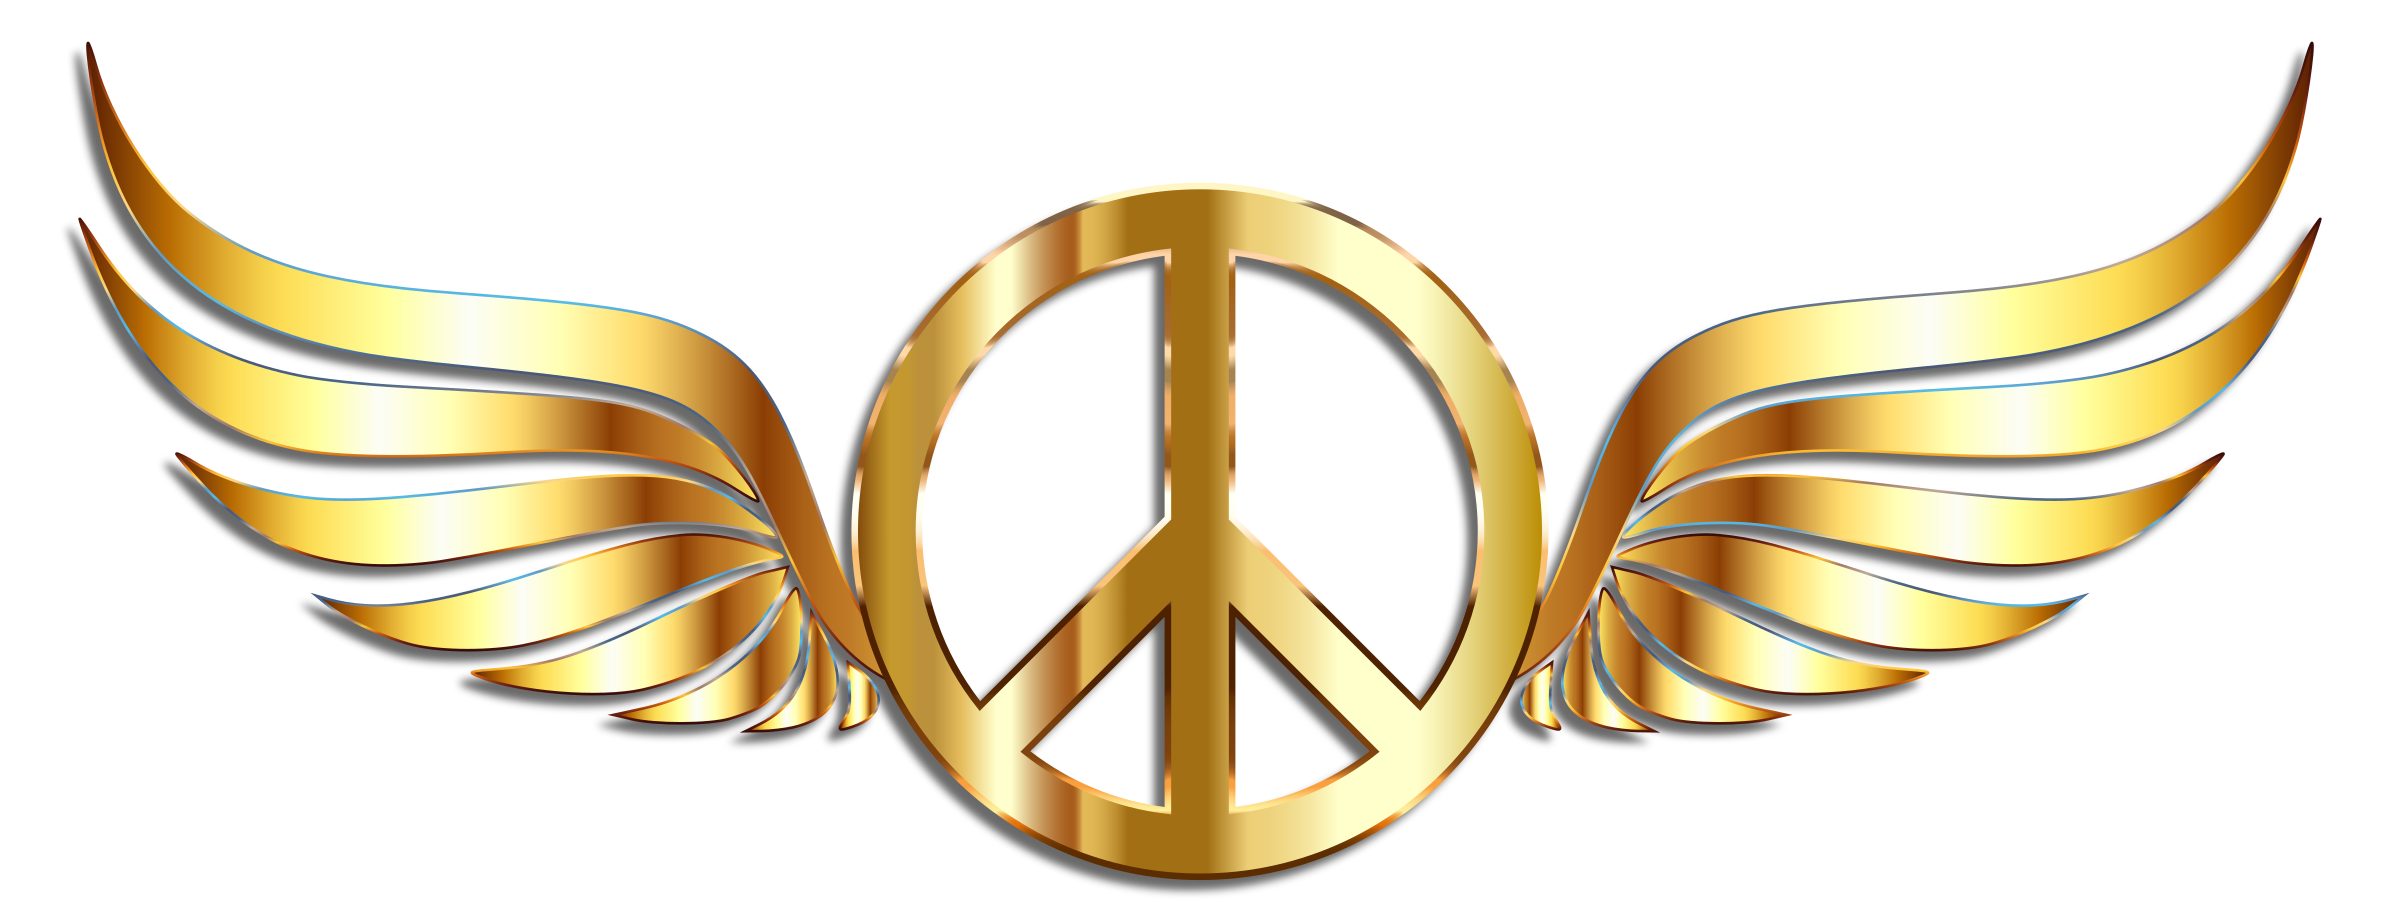 Gold Peace Sign Wings With Drop Shadow by GDJ